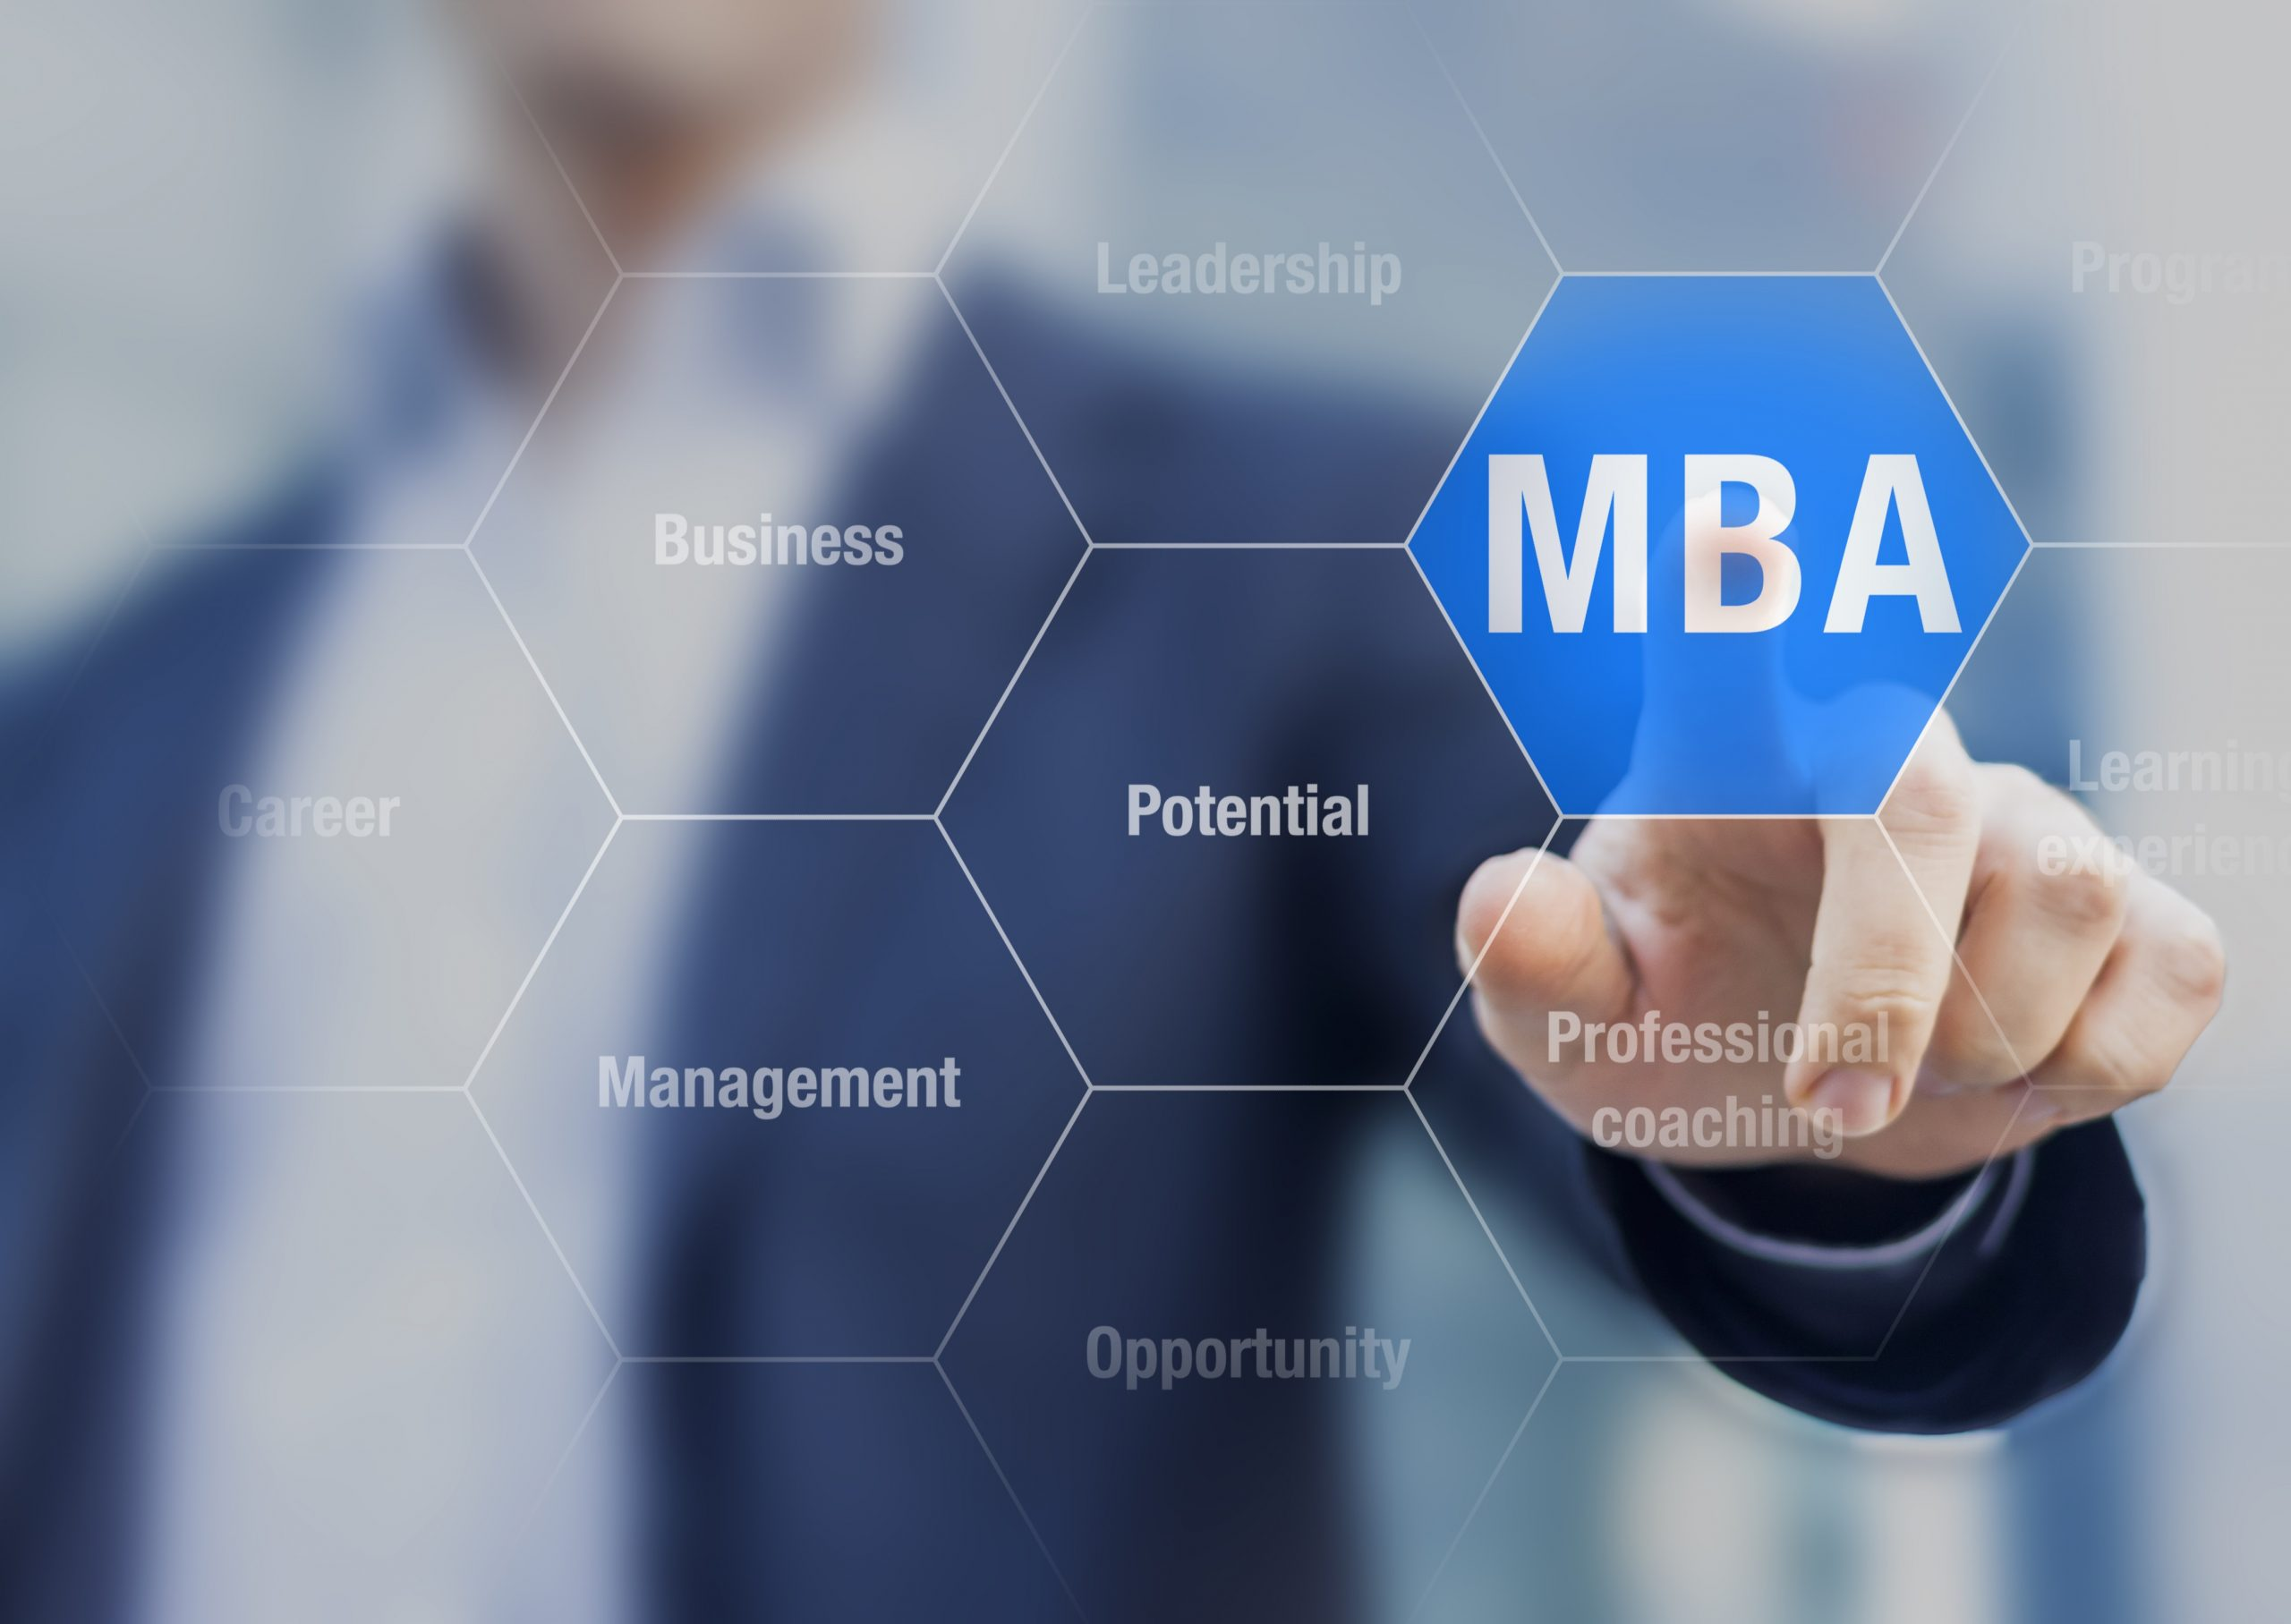 New specializations in MBA